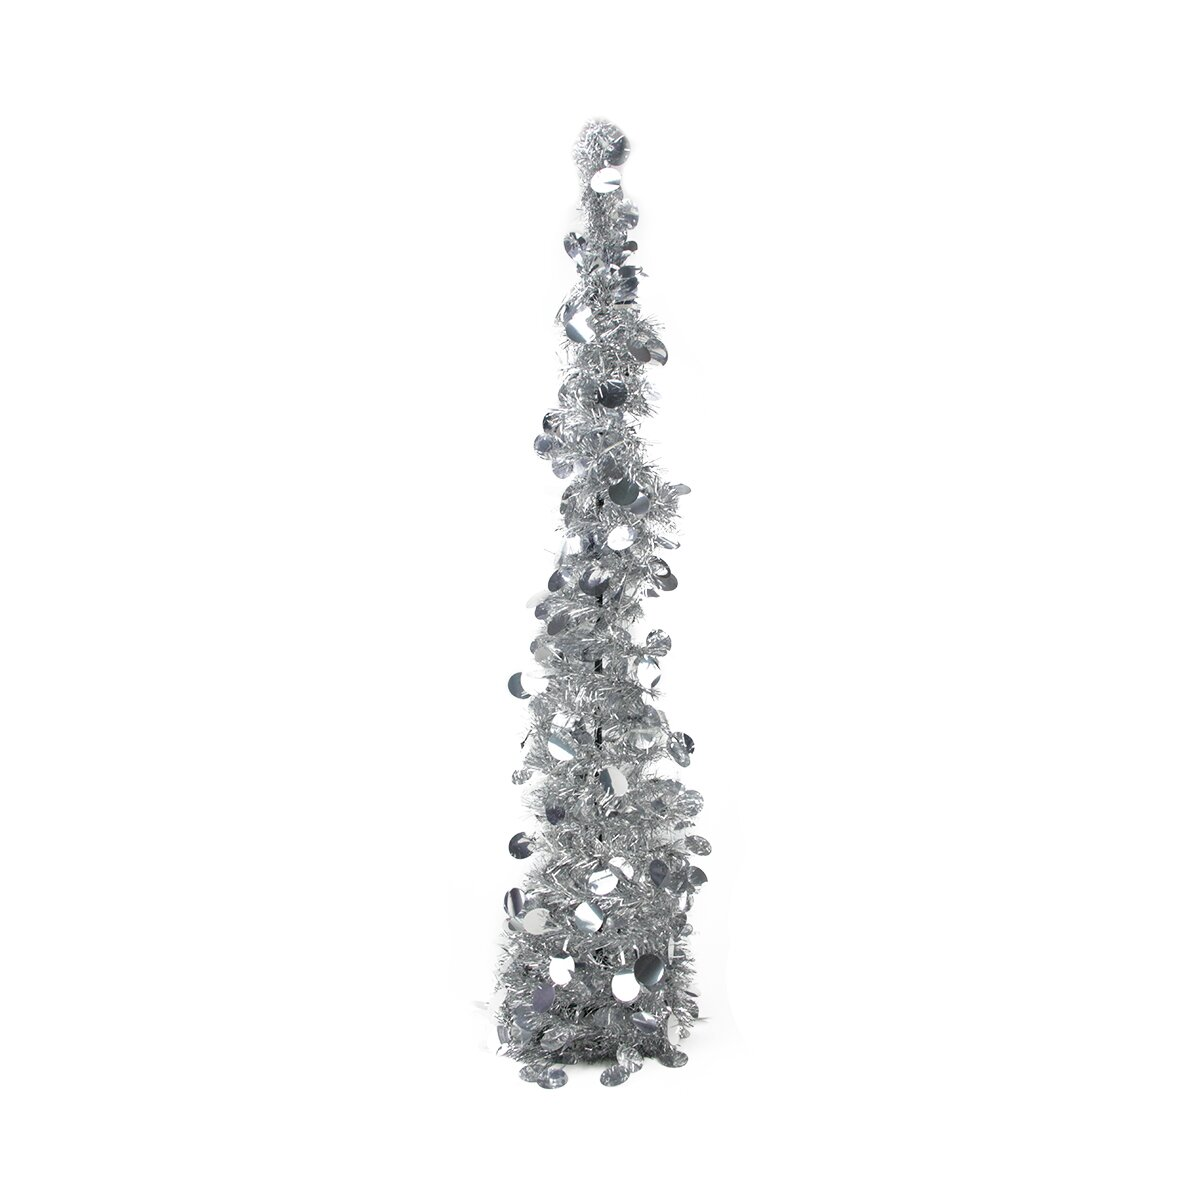 Silver Tinsel Pop Up Christmas Tree: PennDistributing 2.75' Silver Artificial Christmas Tree